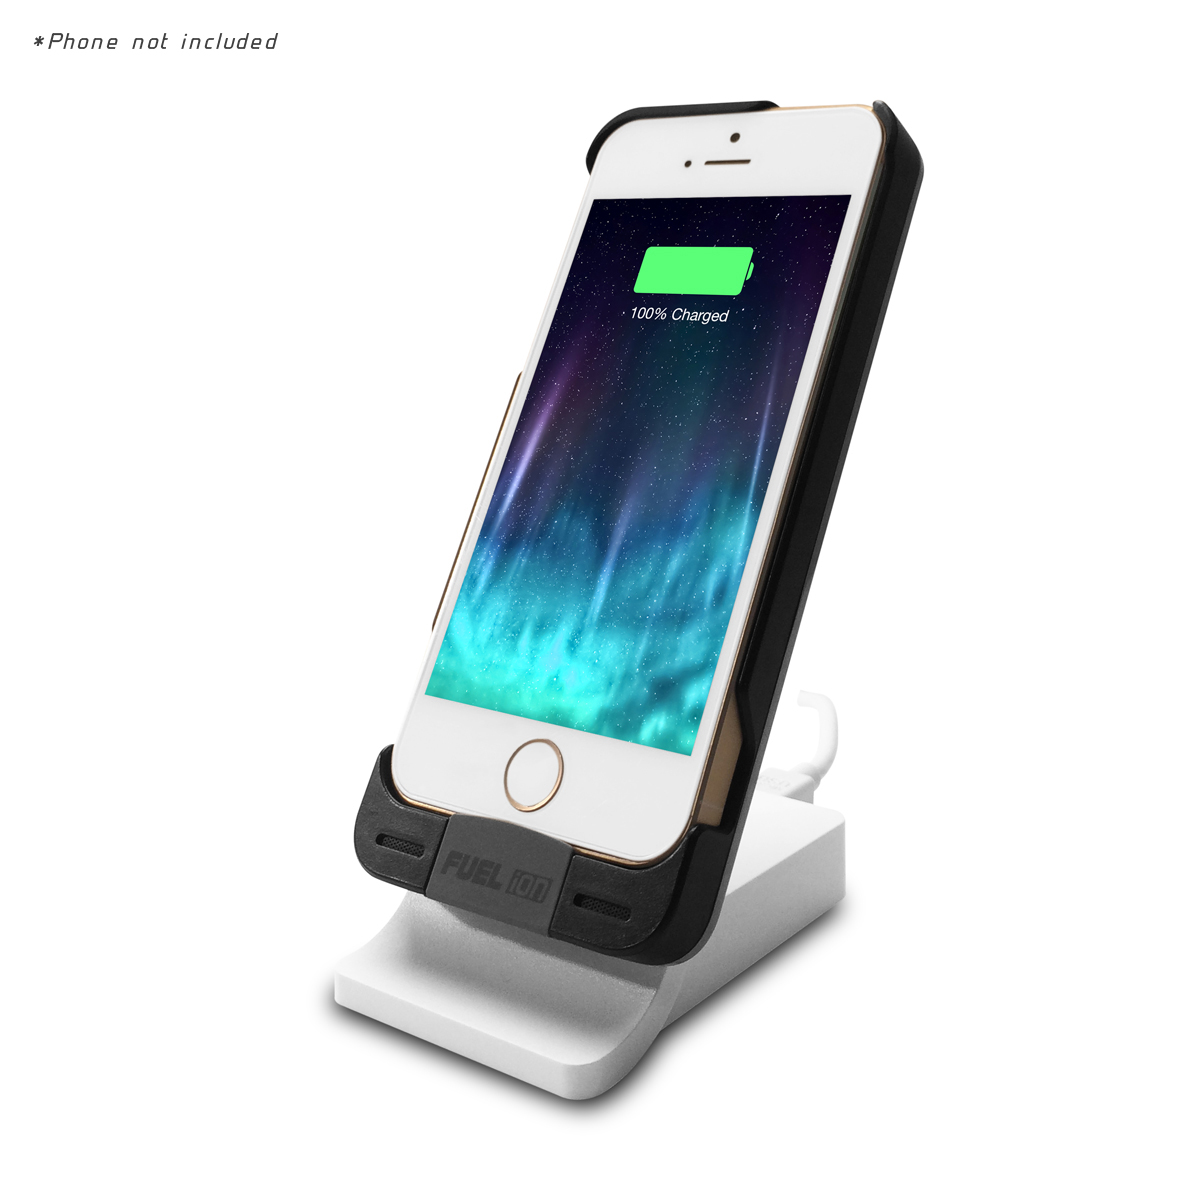 PATRIOT FUEL ION iPHONE® 5/5S CASE WITH CHARGING STAND